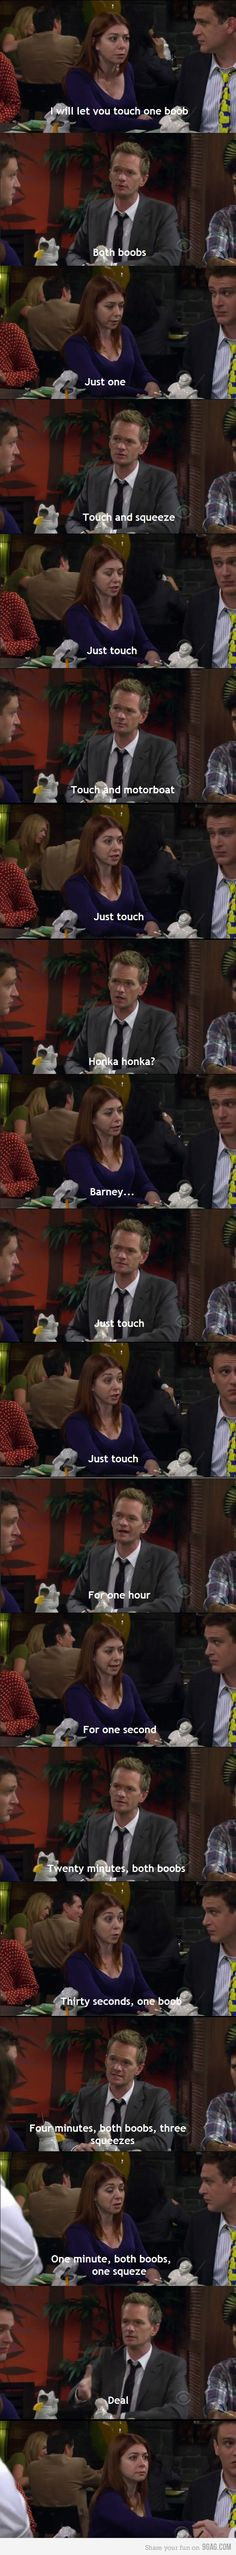 Barney Stinson Making business!!! This guy is truly one of the funniest guys ever. Everyone sees him as Neil Patrick Harris and gay. But I see him as Barney Stinson from How I met your Mother and a very funny man!